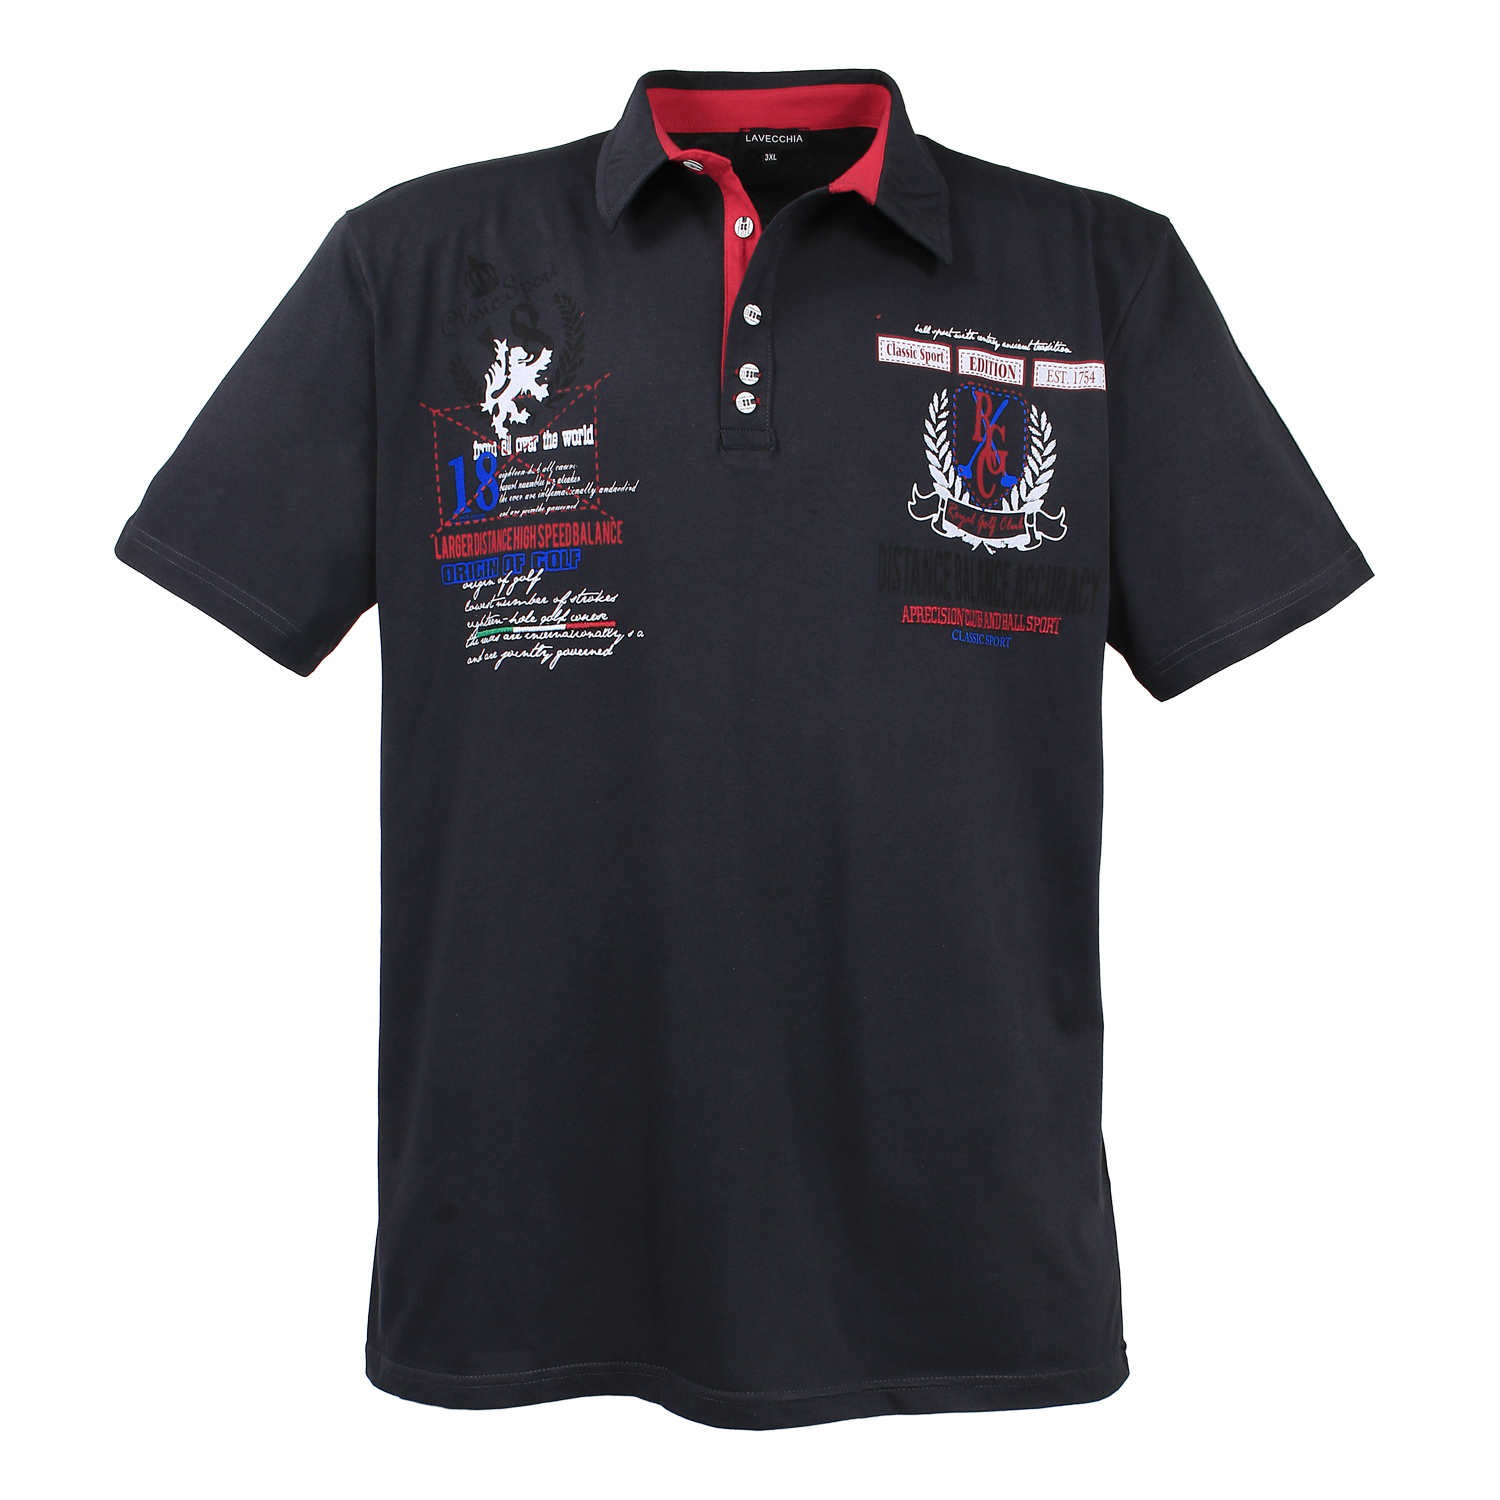 Detail Image to Polo shirt in black by Lavecchia in extra large sizes until 8XL